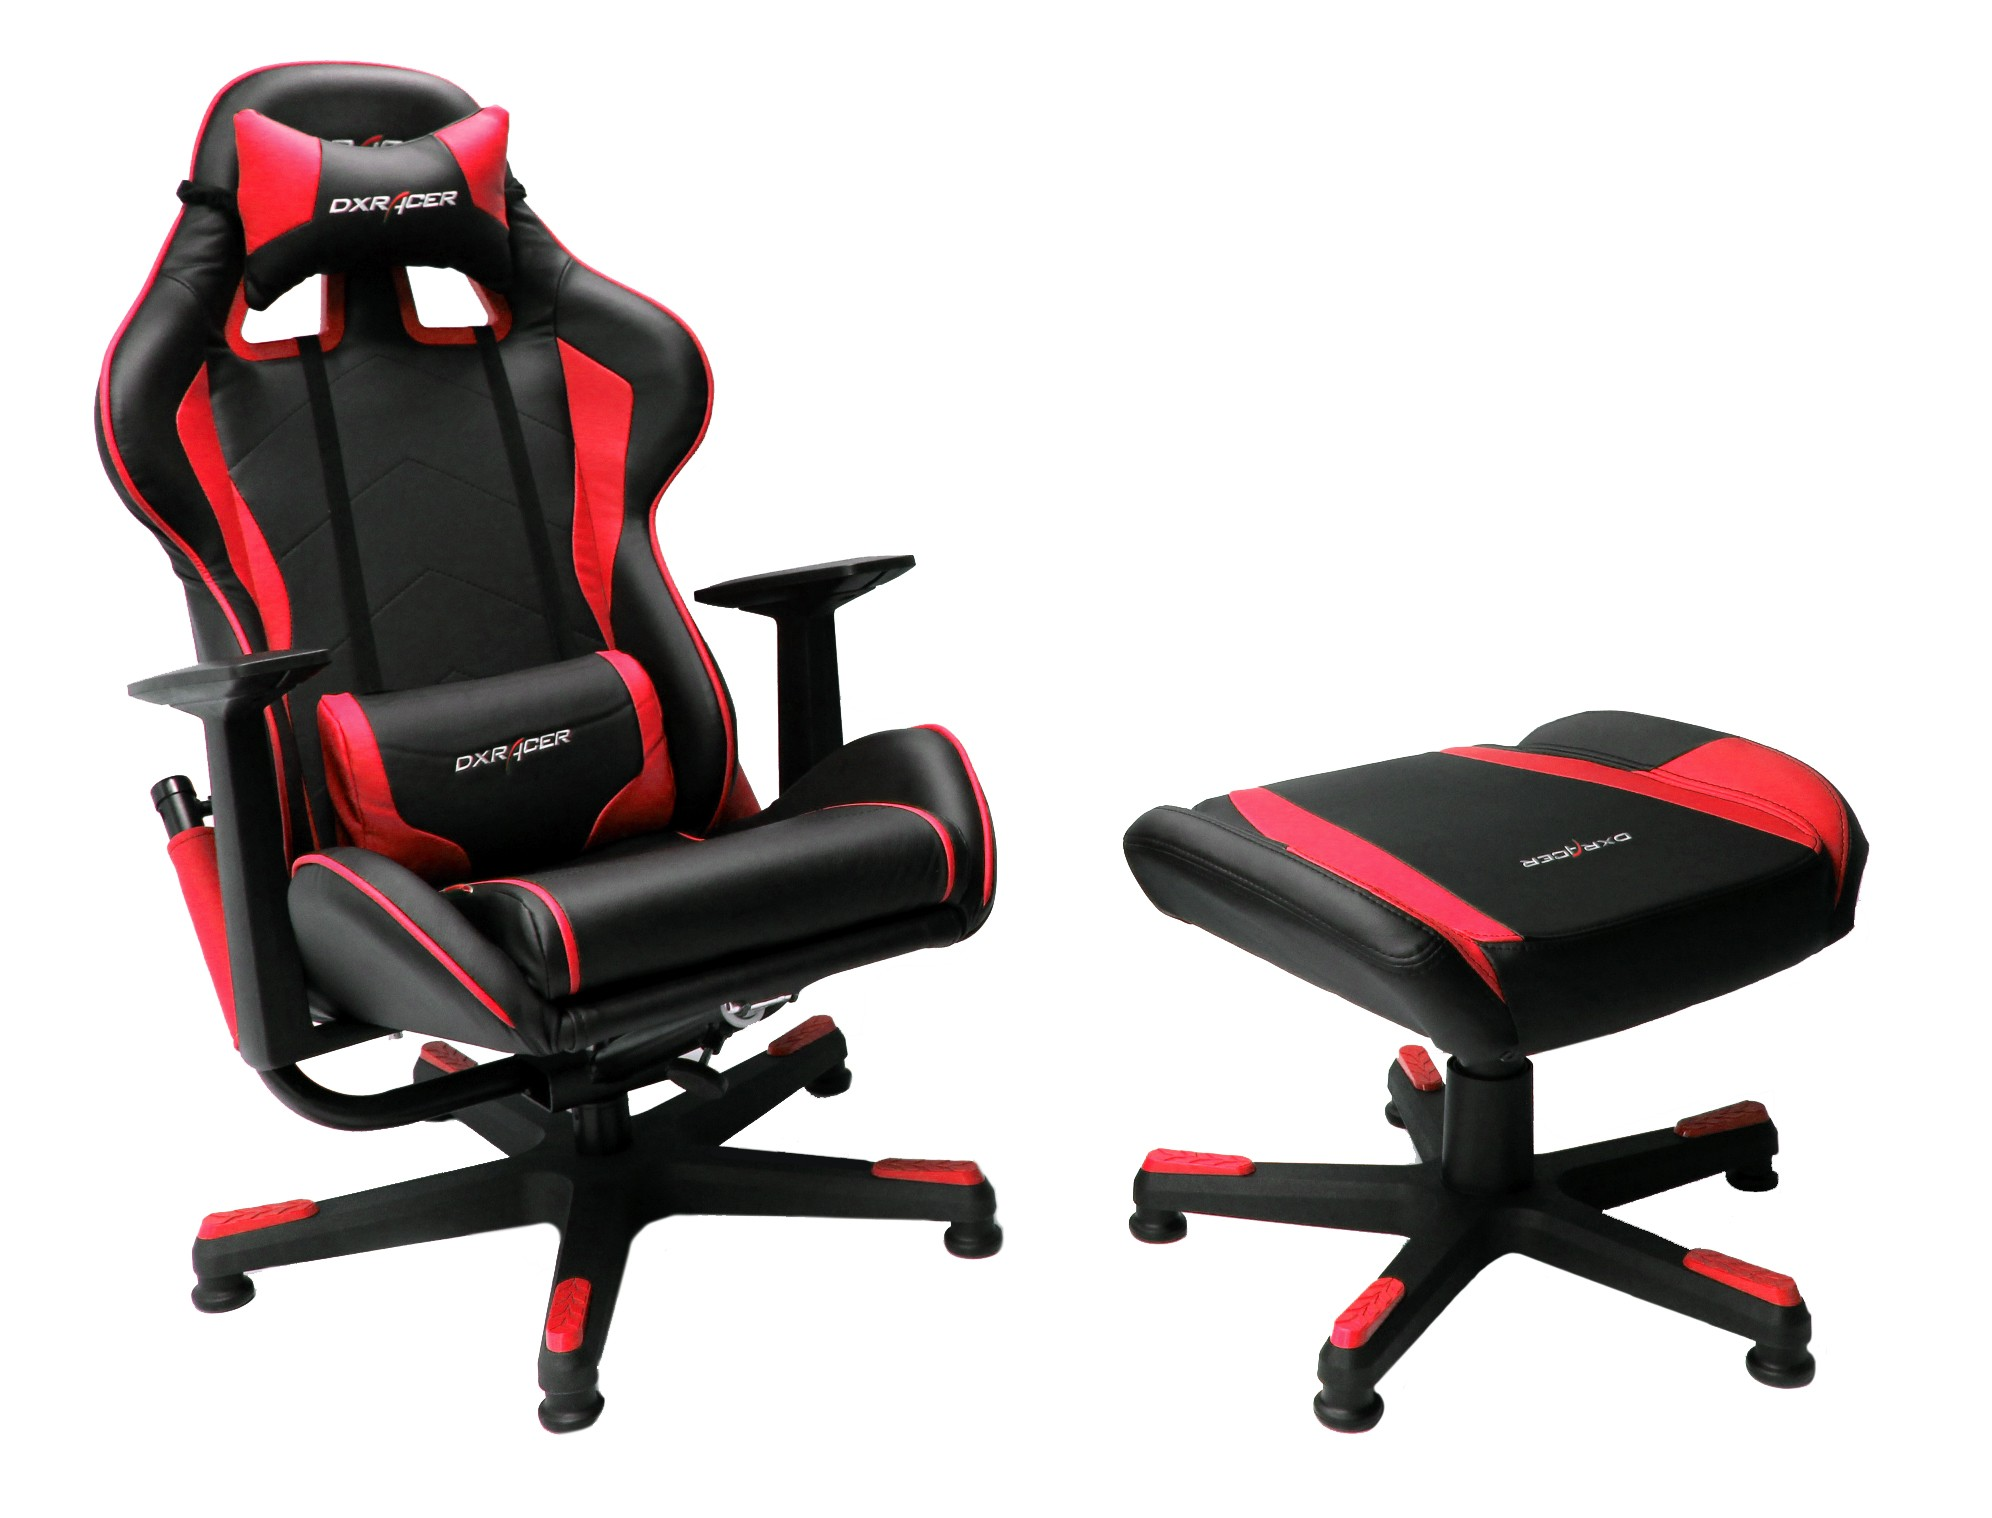 red gaming chair lazy boy cover feel the part of a real race car driver  dxracer gets nz